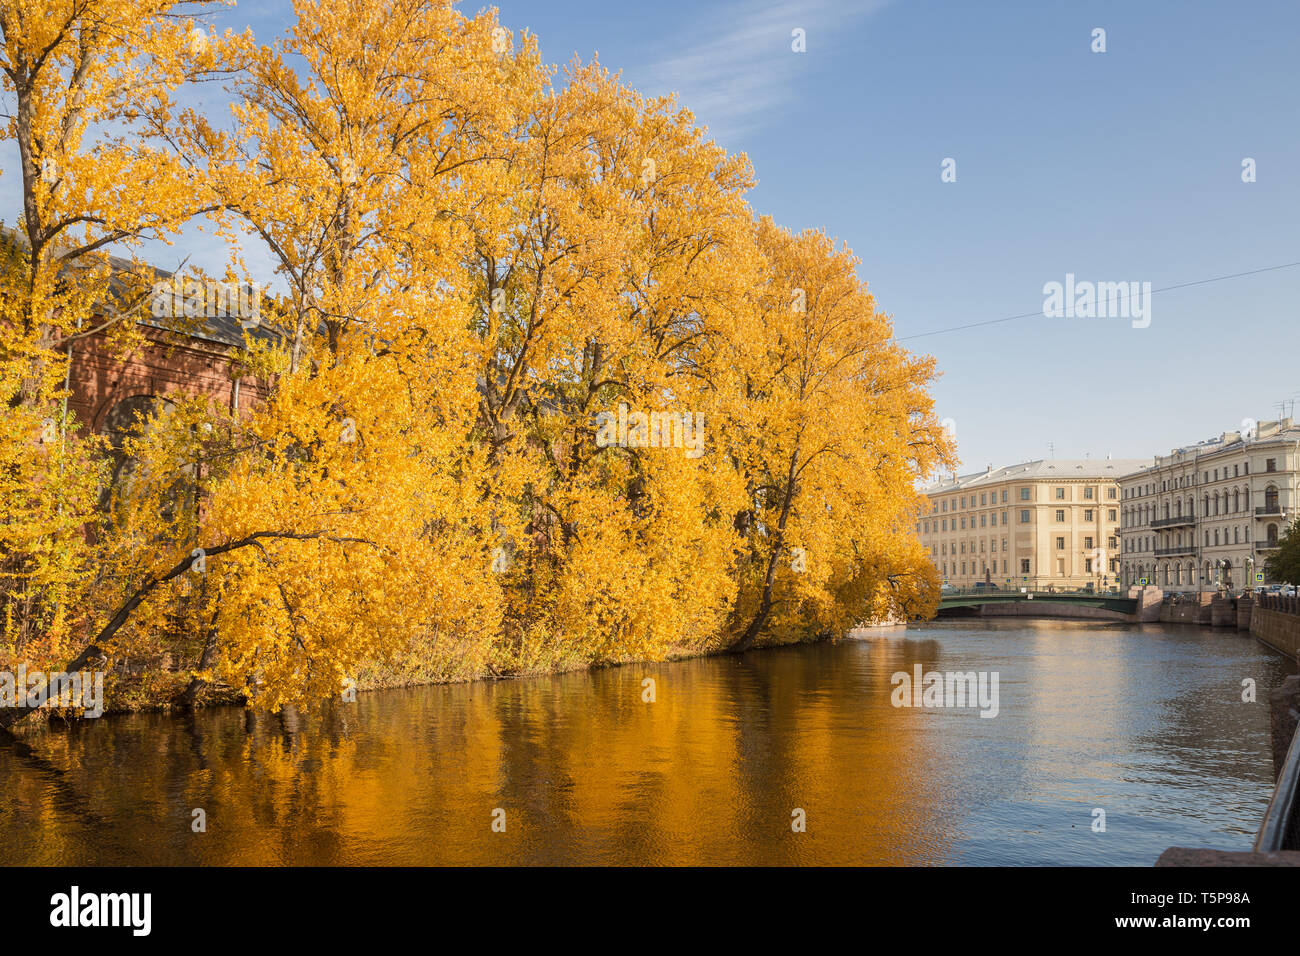 Autumn cityscape of St. Petersburg. Old poplars with yellow leaves lean over the water of the river Moika on a sunny autumn day - Stock Image